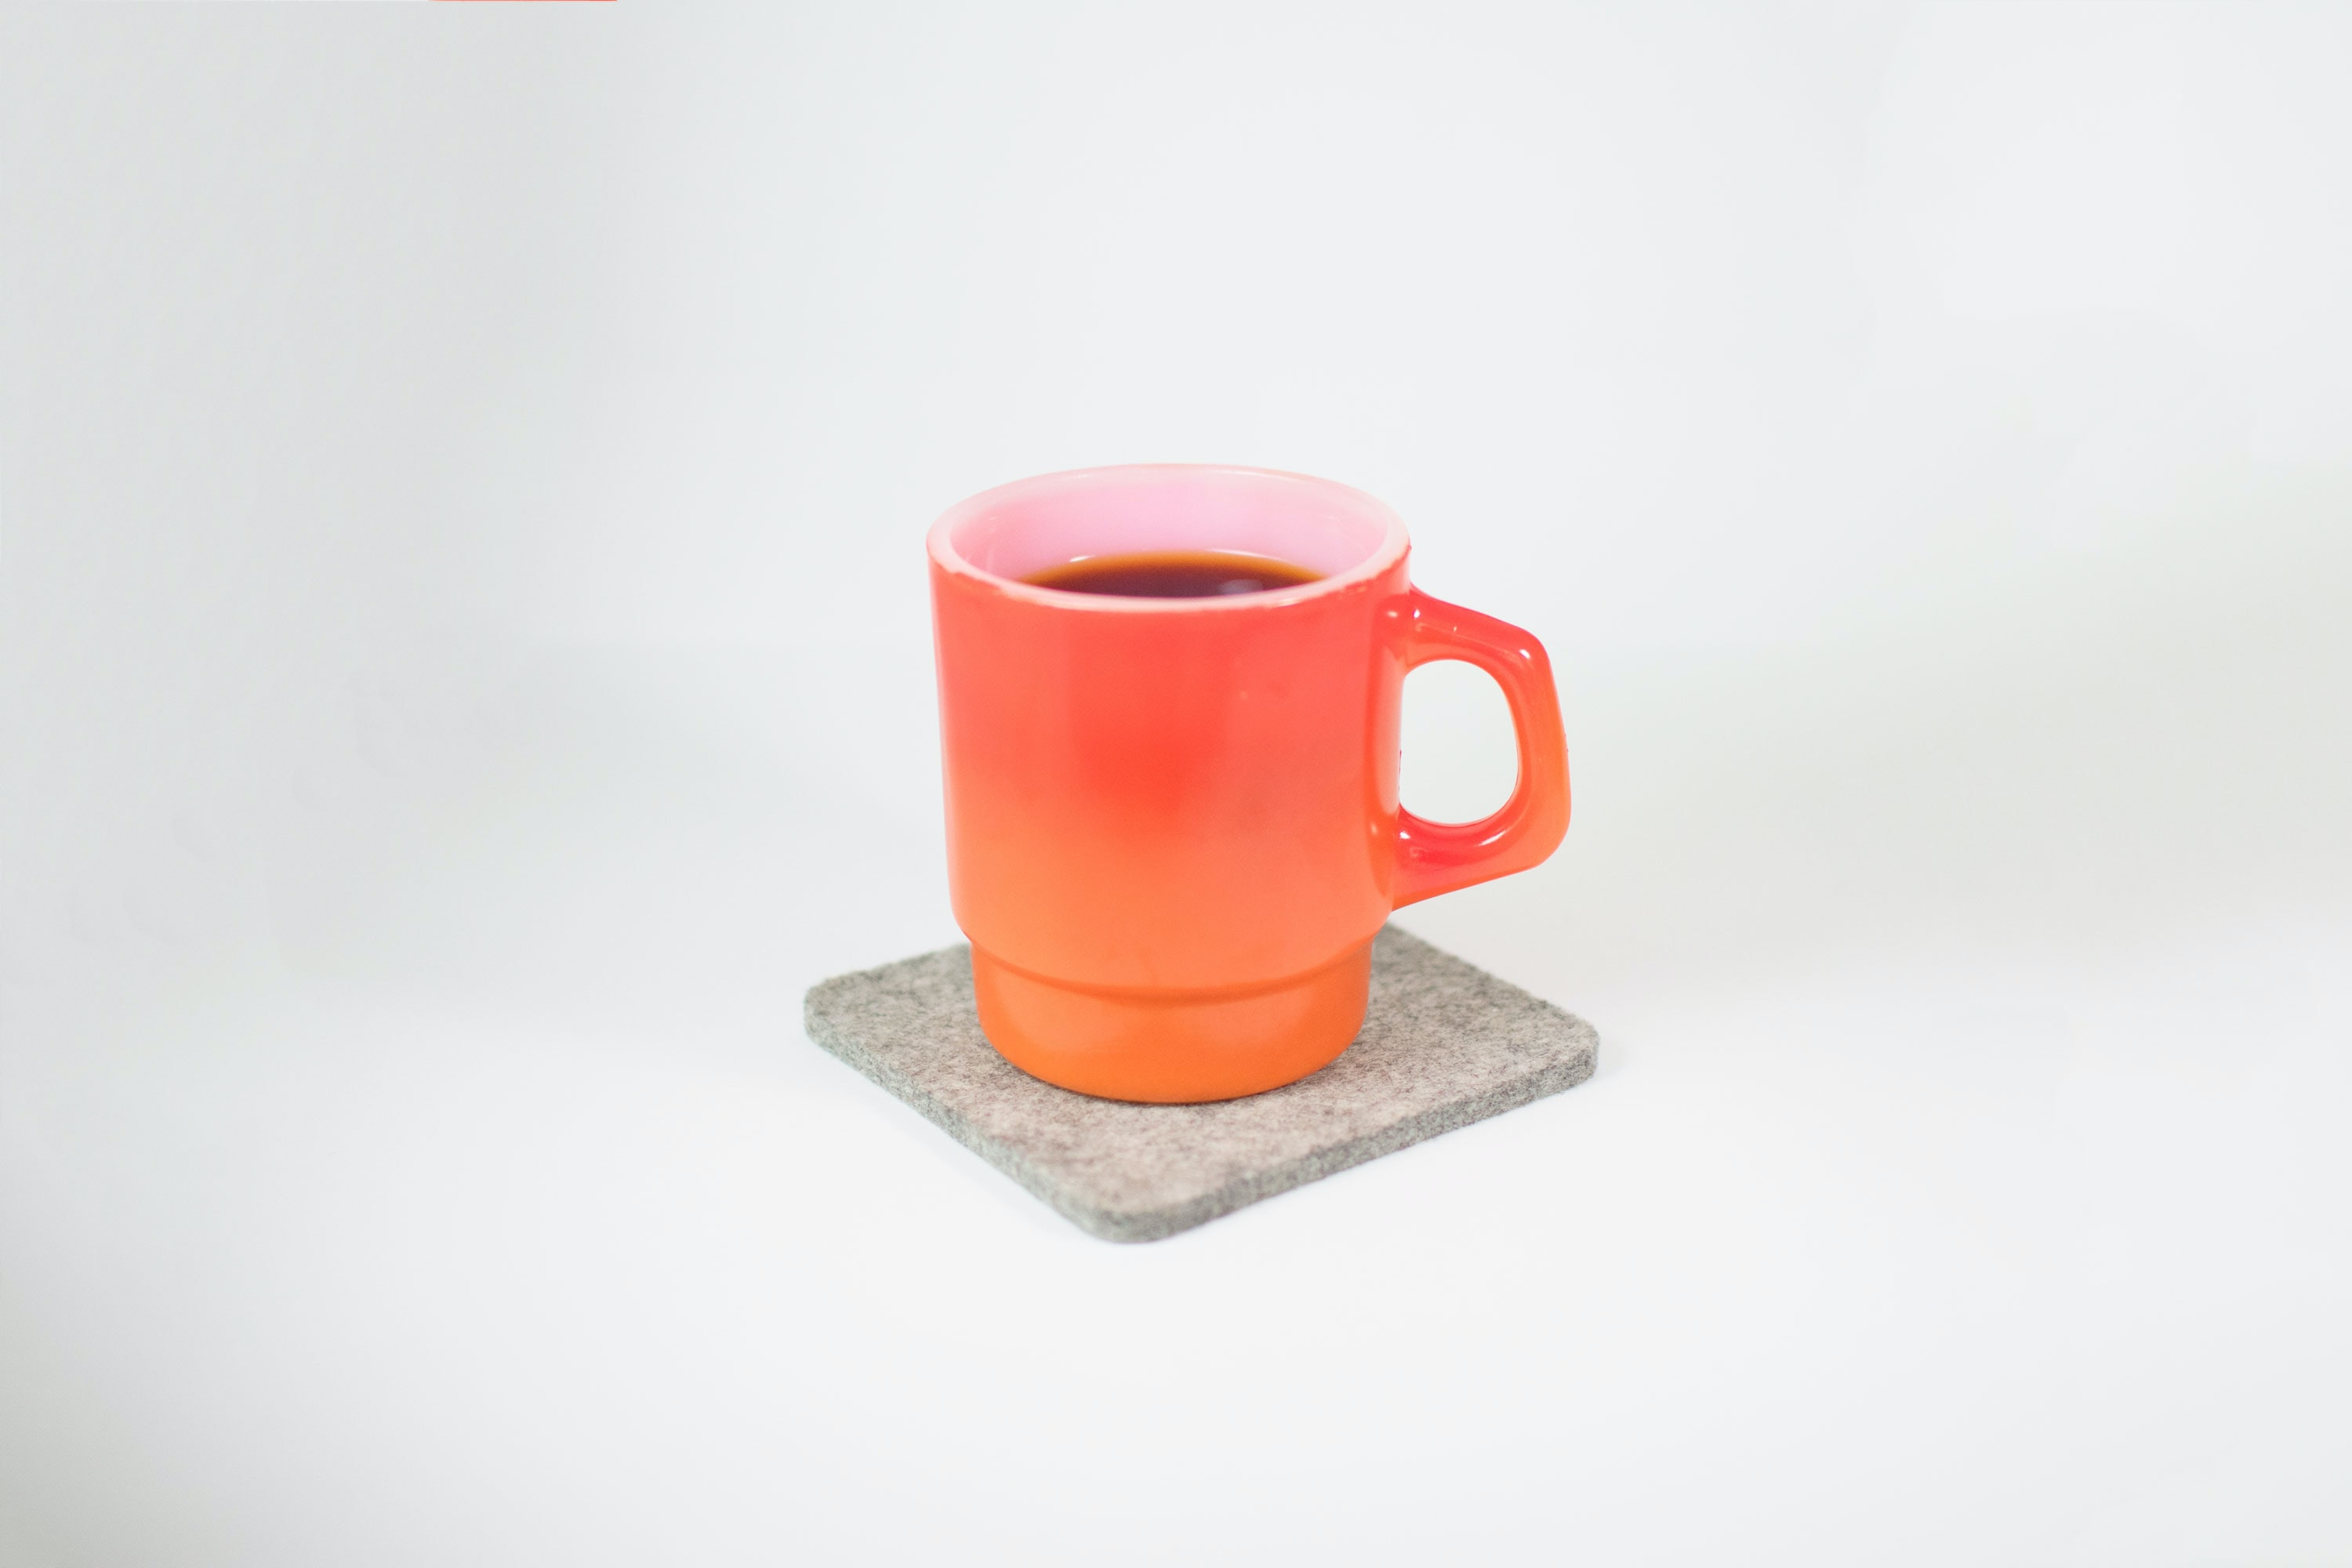 orange mug filled with black liquid